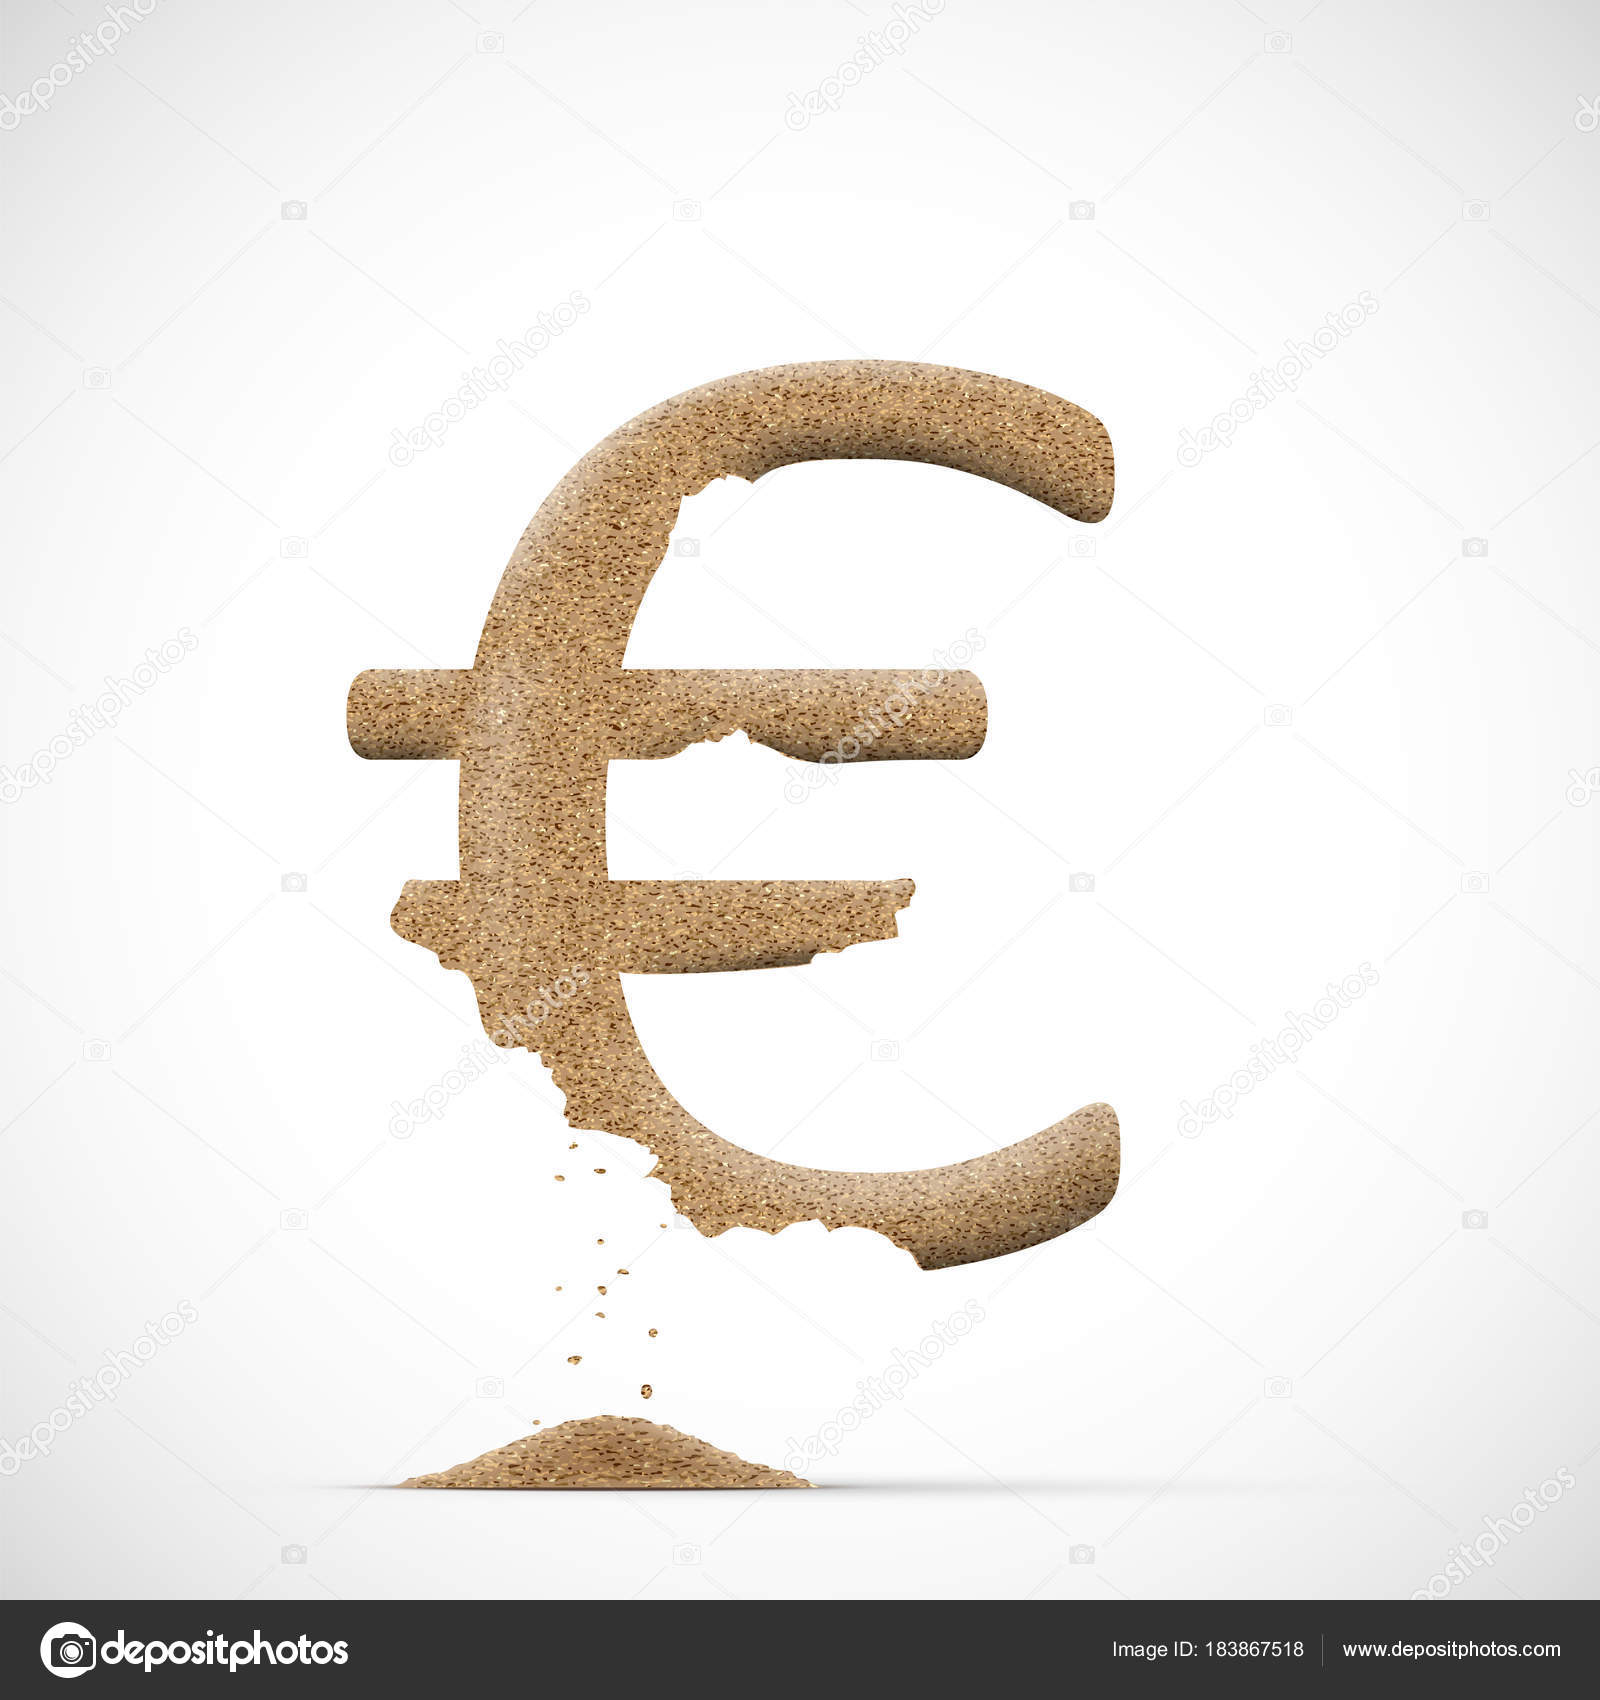 Vector Illustration Design Euro Currency Symbol Consists Sand